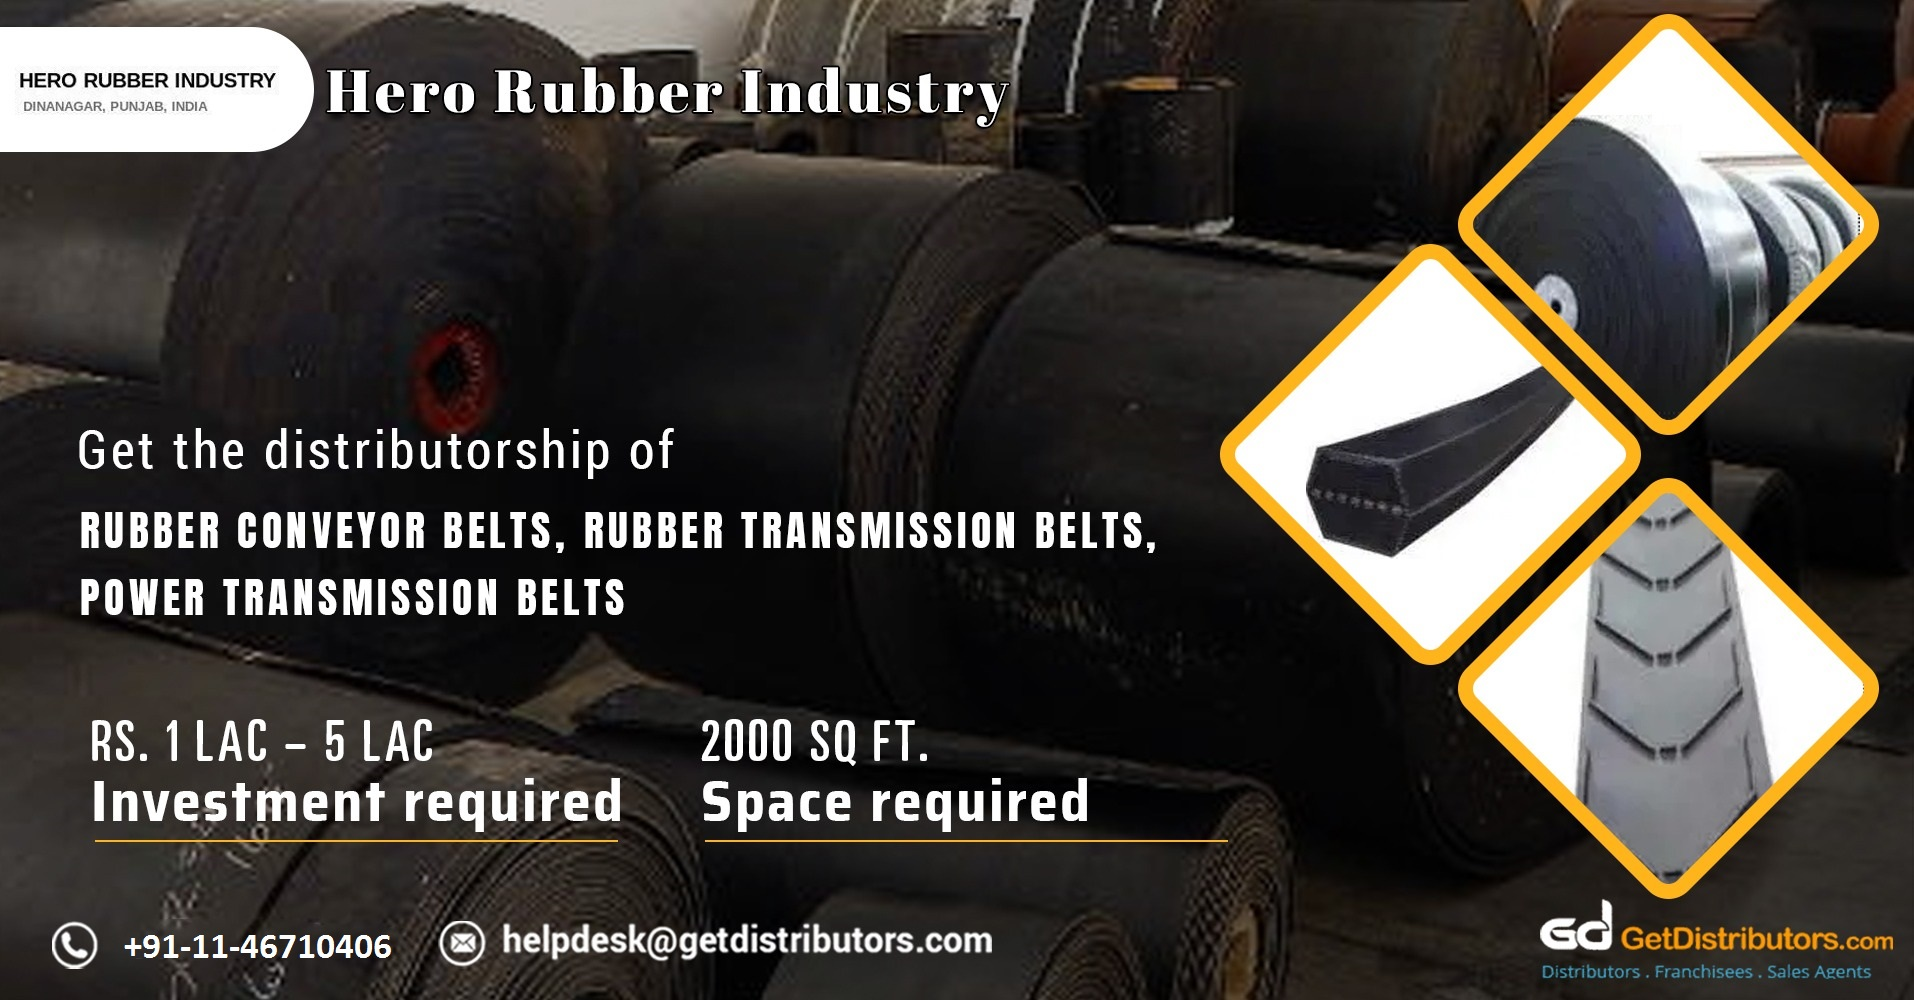 Distributorship of a wide range of conveyor belts